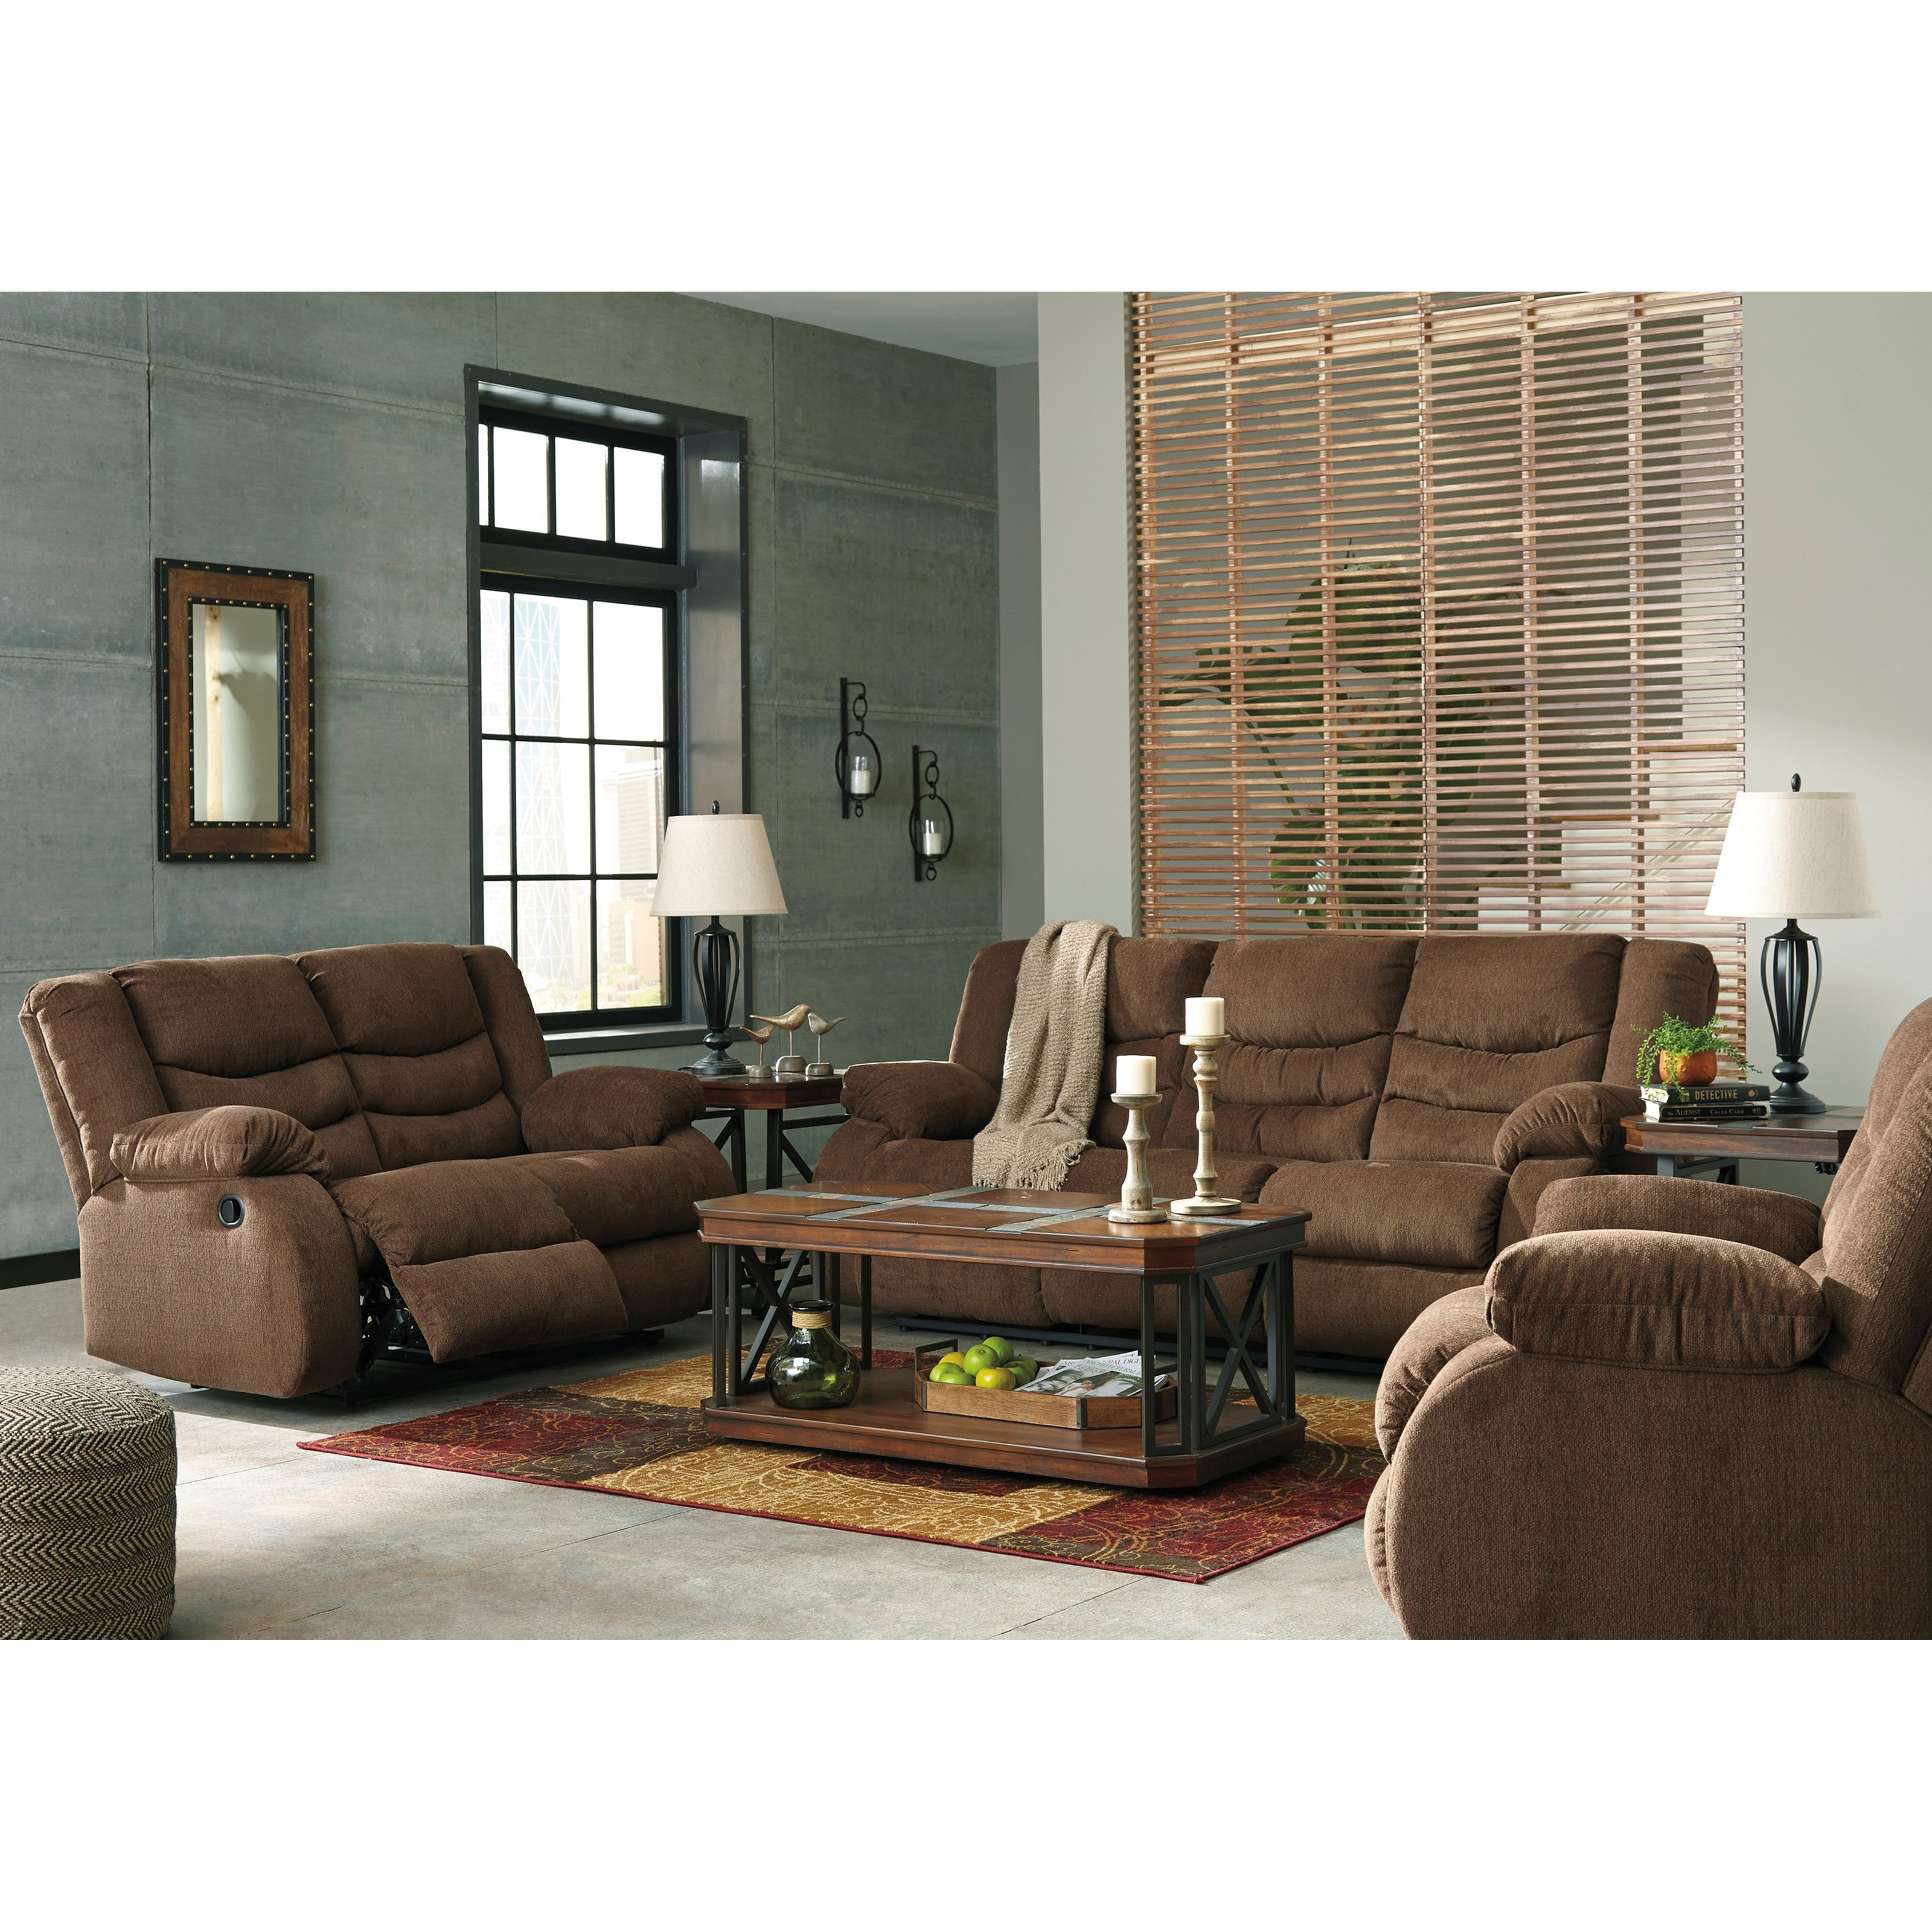 Signature design by ashley tulen reclining living room for Living room furniture groups